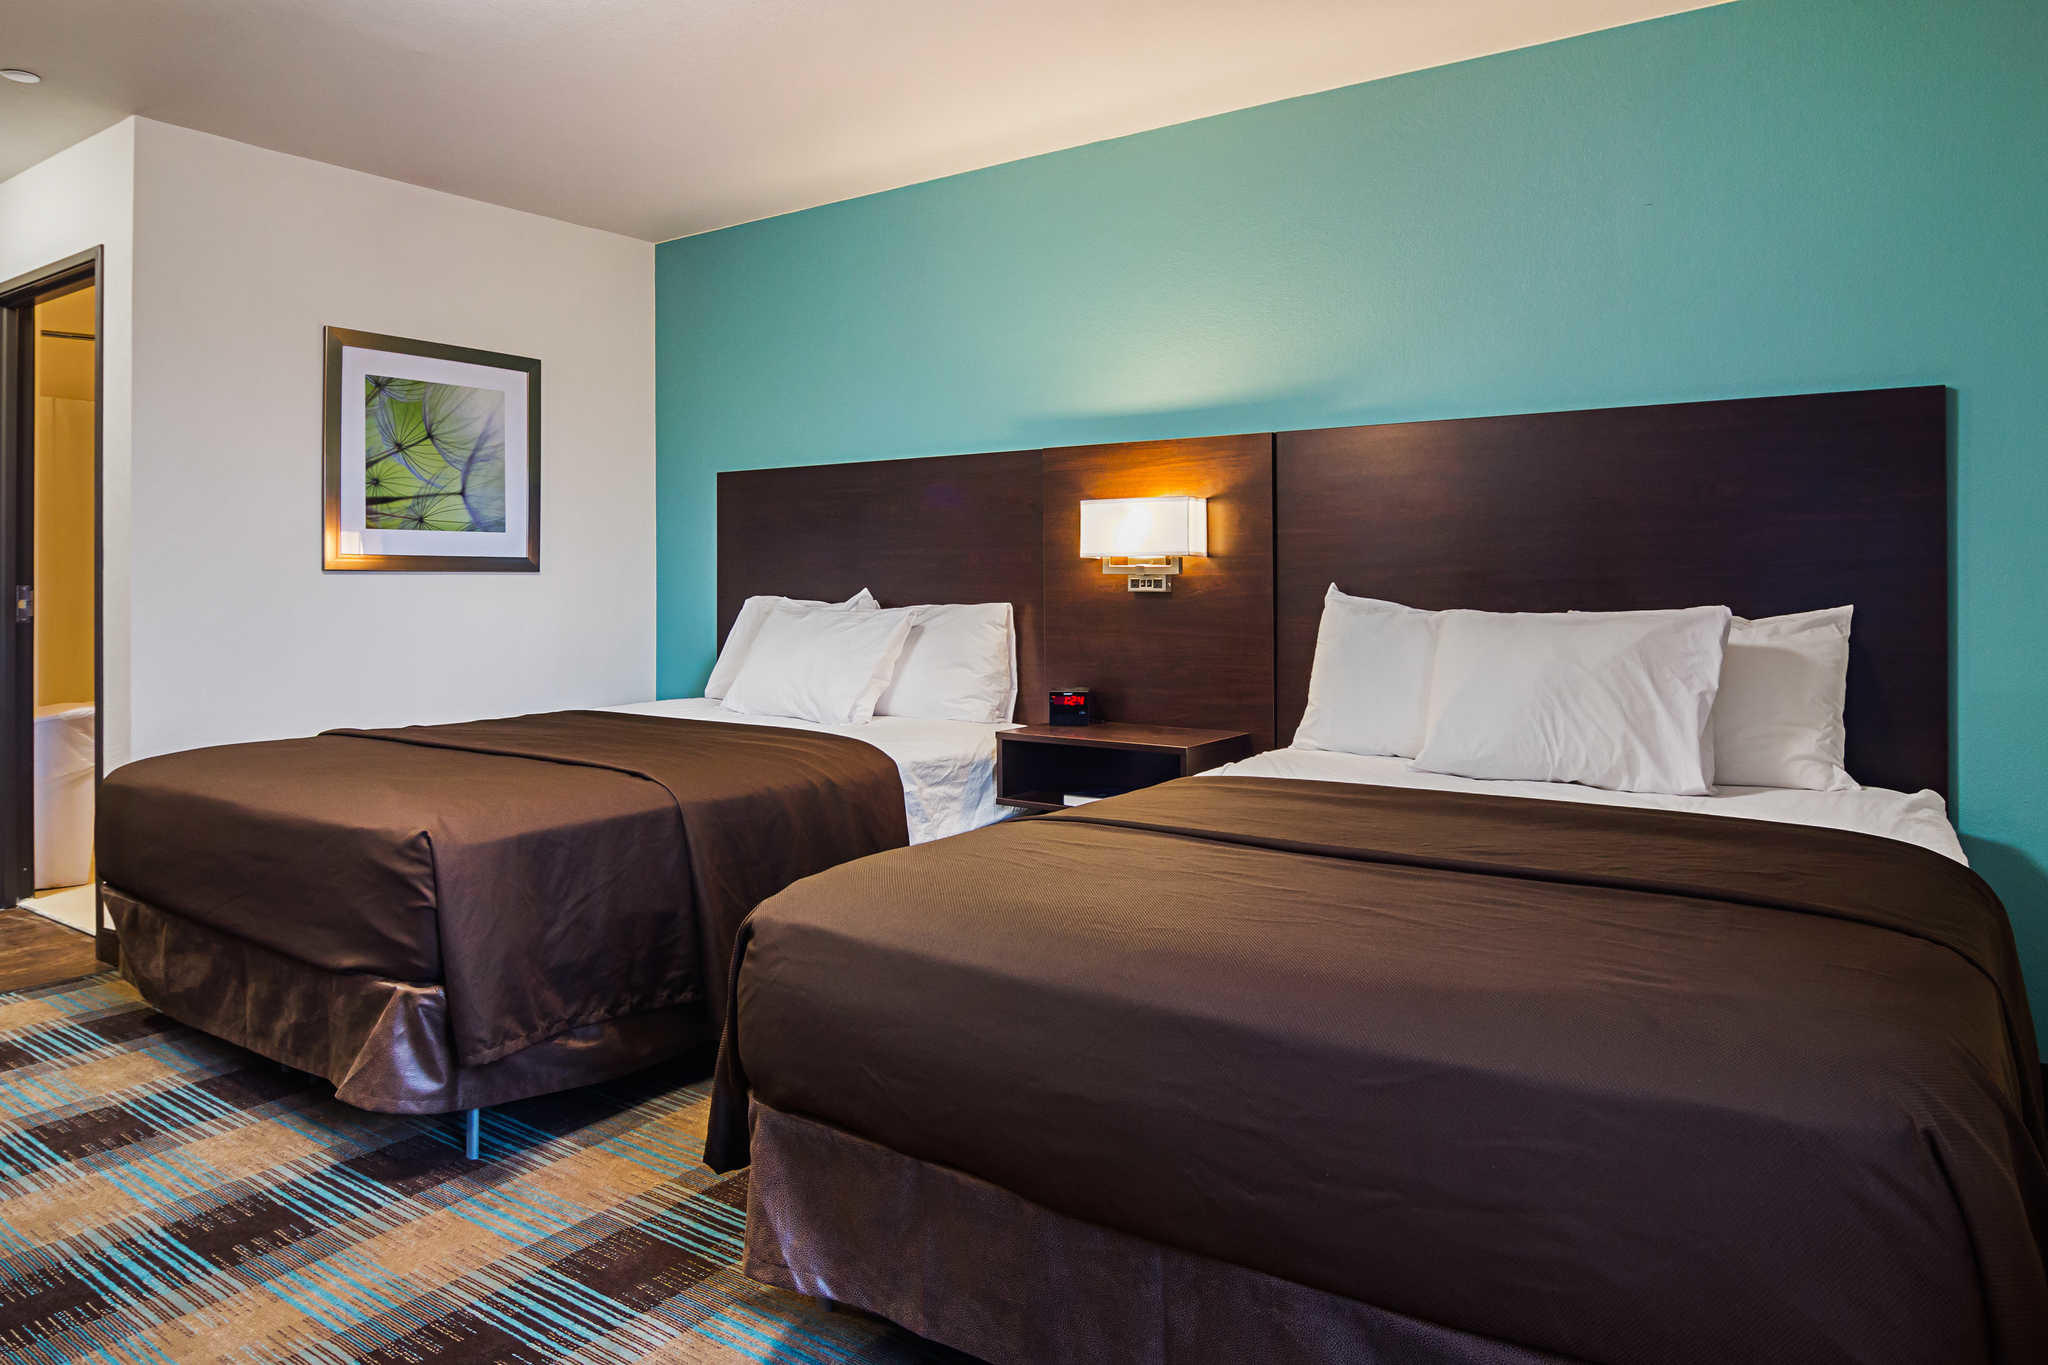 Suburban Extended Stay Hotel image 33